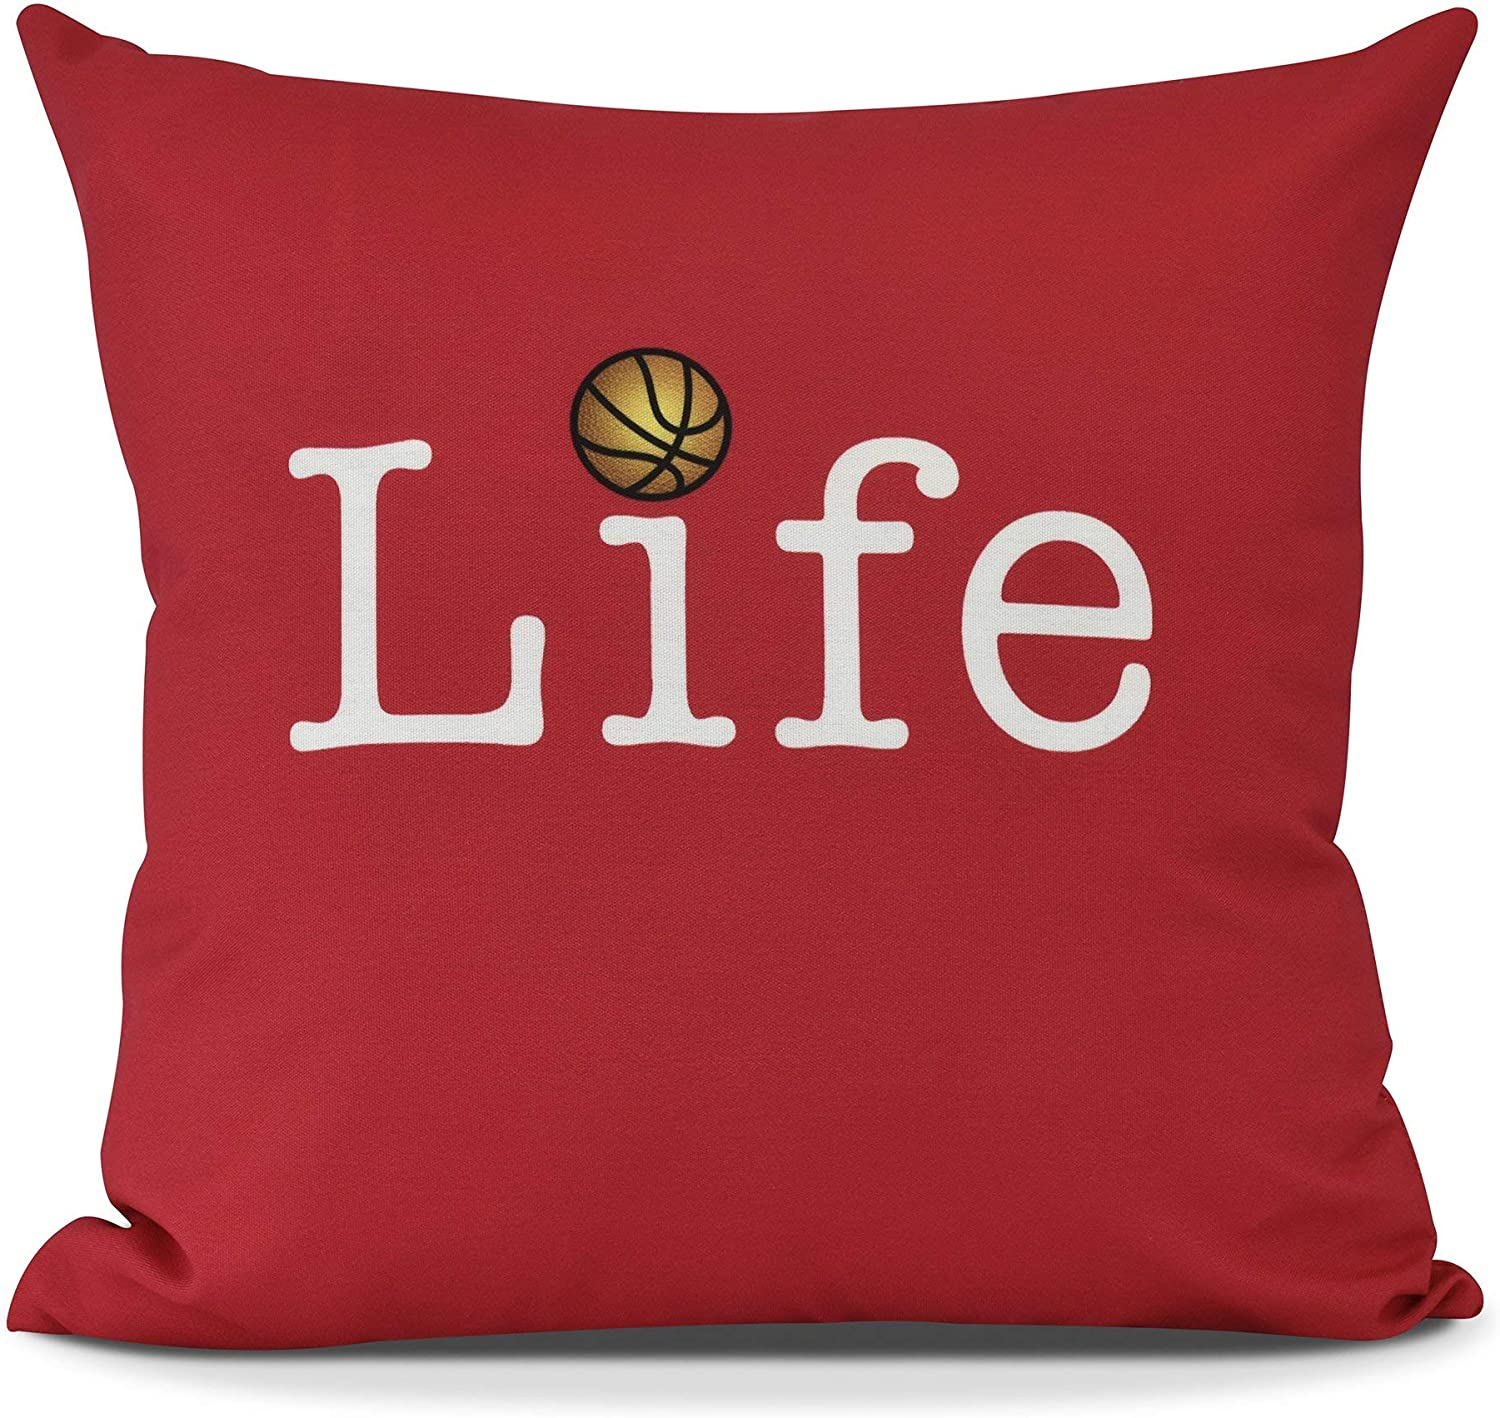 Amazon Com Misc 18 X18 Red Life Basketball Print Throw Pillow Sports Themed Cushion Athletic Games Quotes Decorative Pillow Boys Kids Best Gift Fun Graphic Bedroom Couch Casual Style Soft Plush Polyester Home